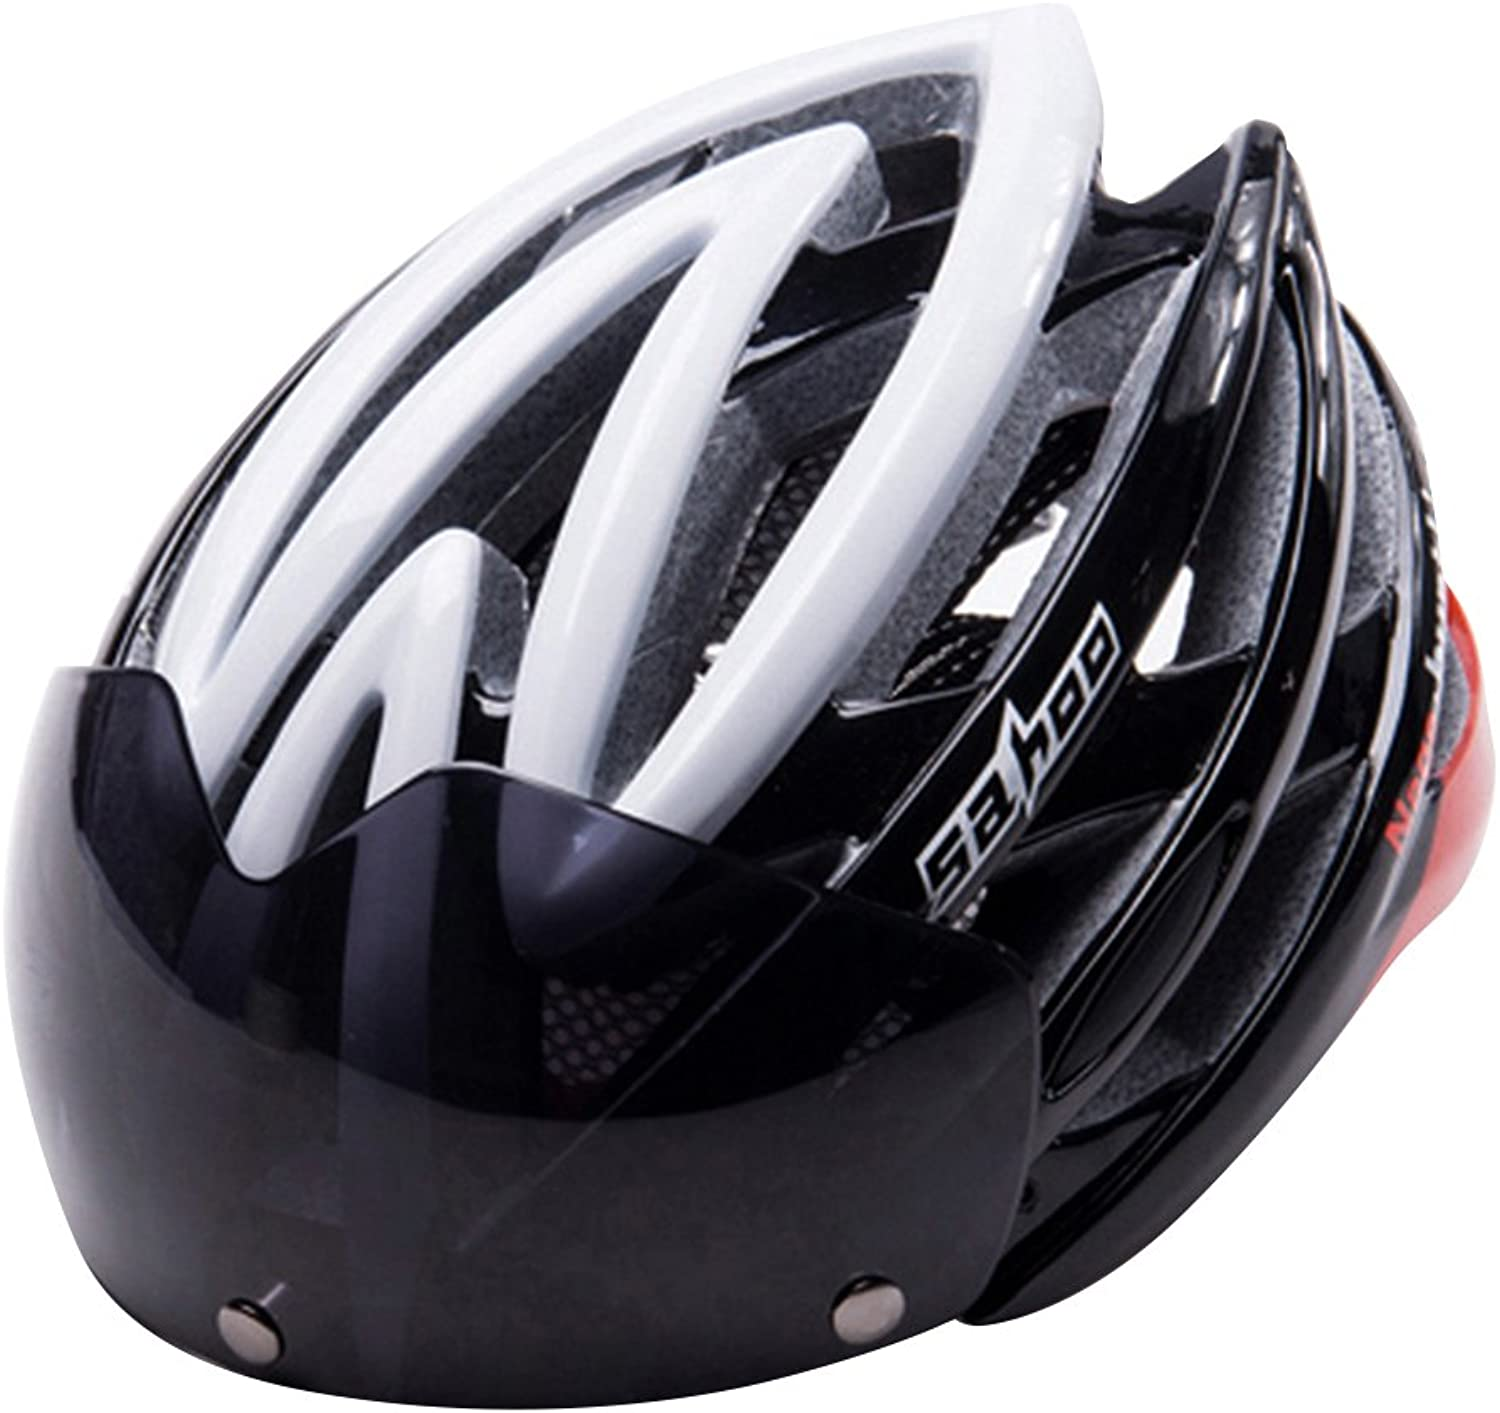 New Adult Street Bike Bicycle Cycling Safety Helmet with Lens Anti-Insect Net